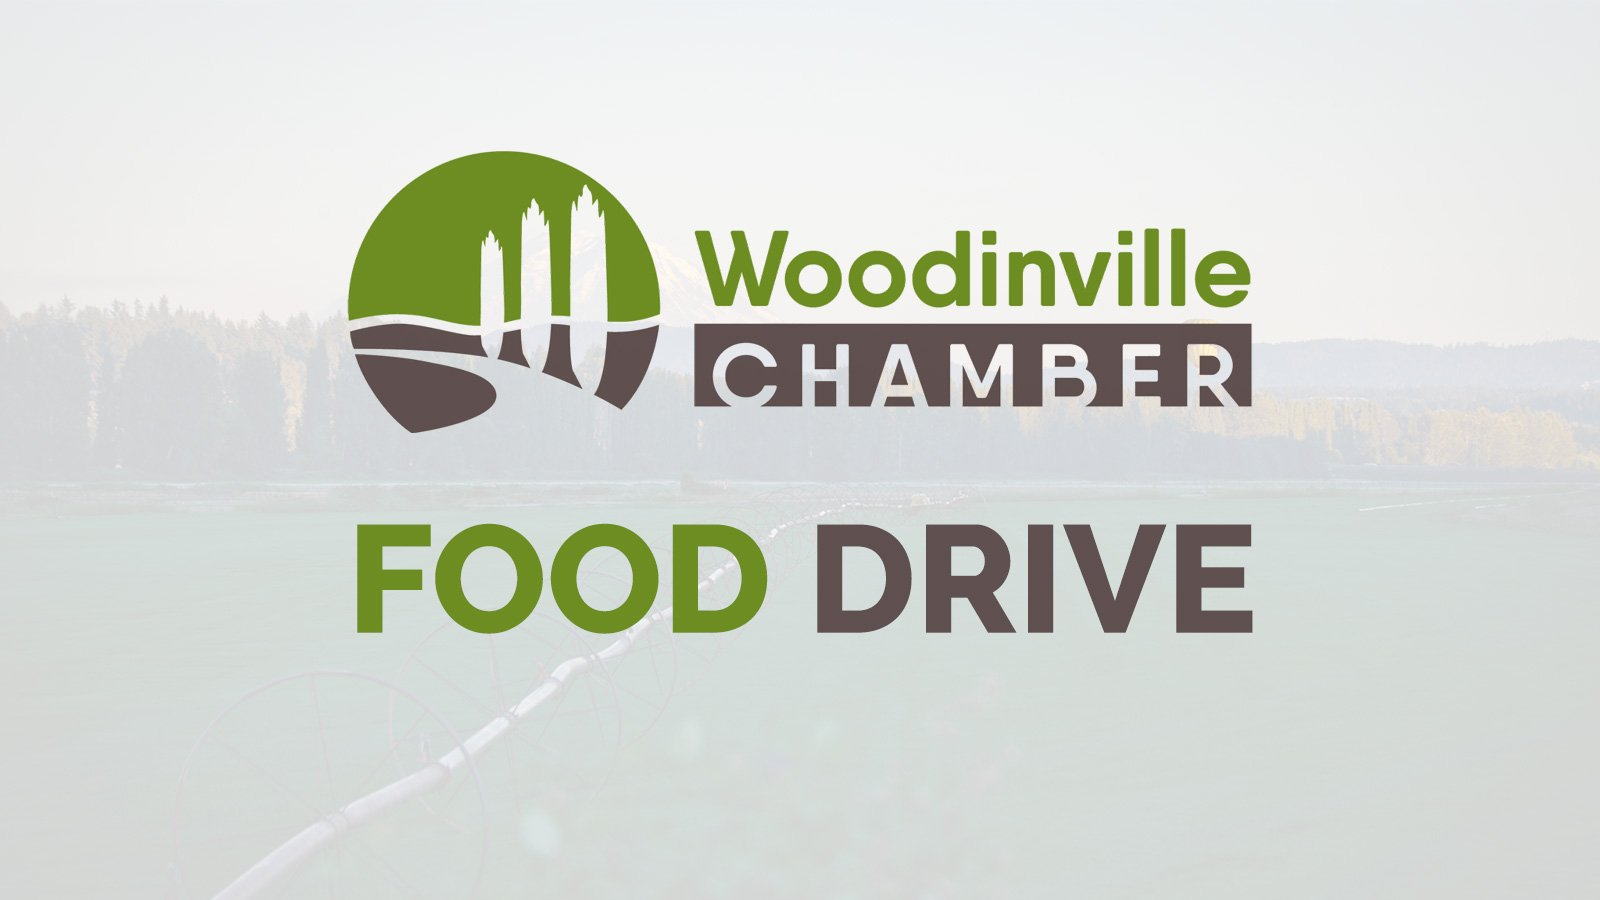 Woodinville Chamber Food Drive Through June 19